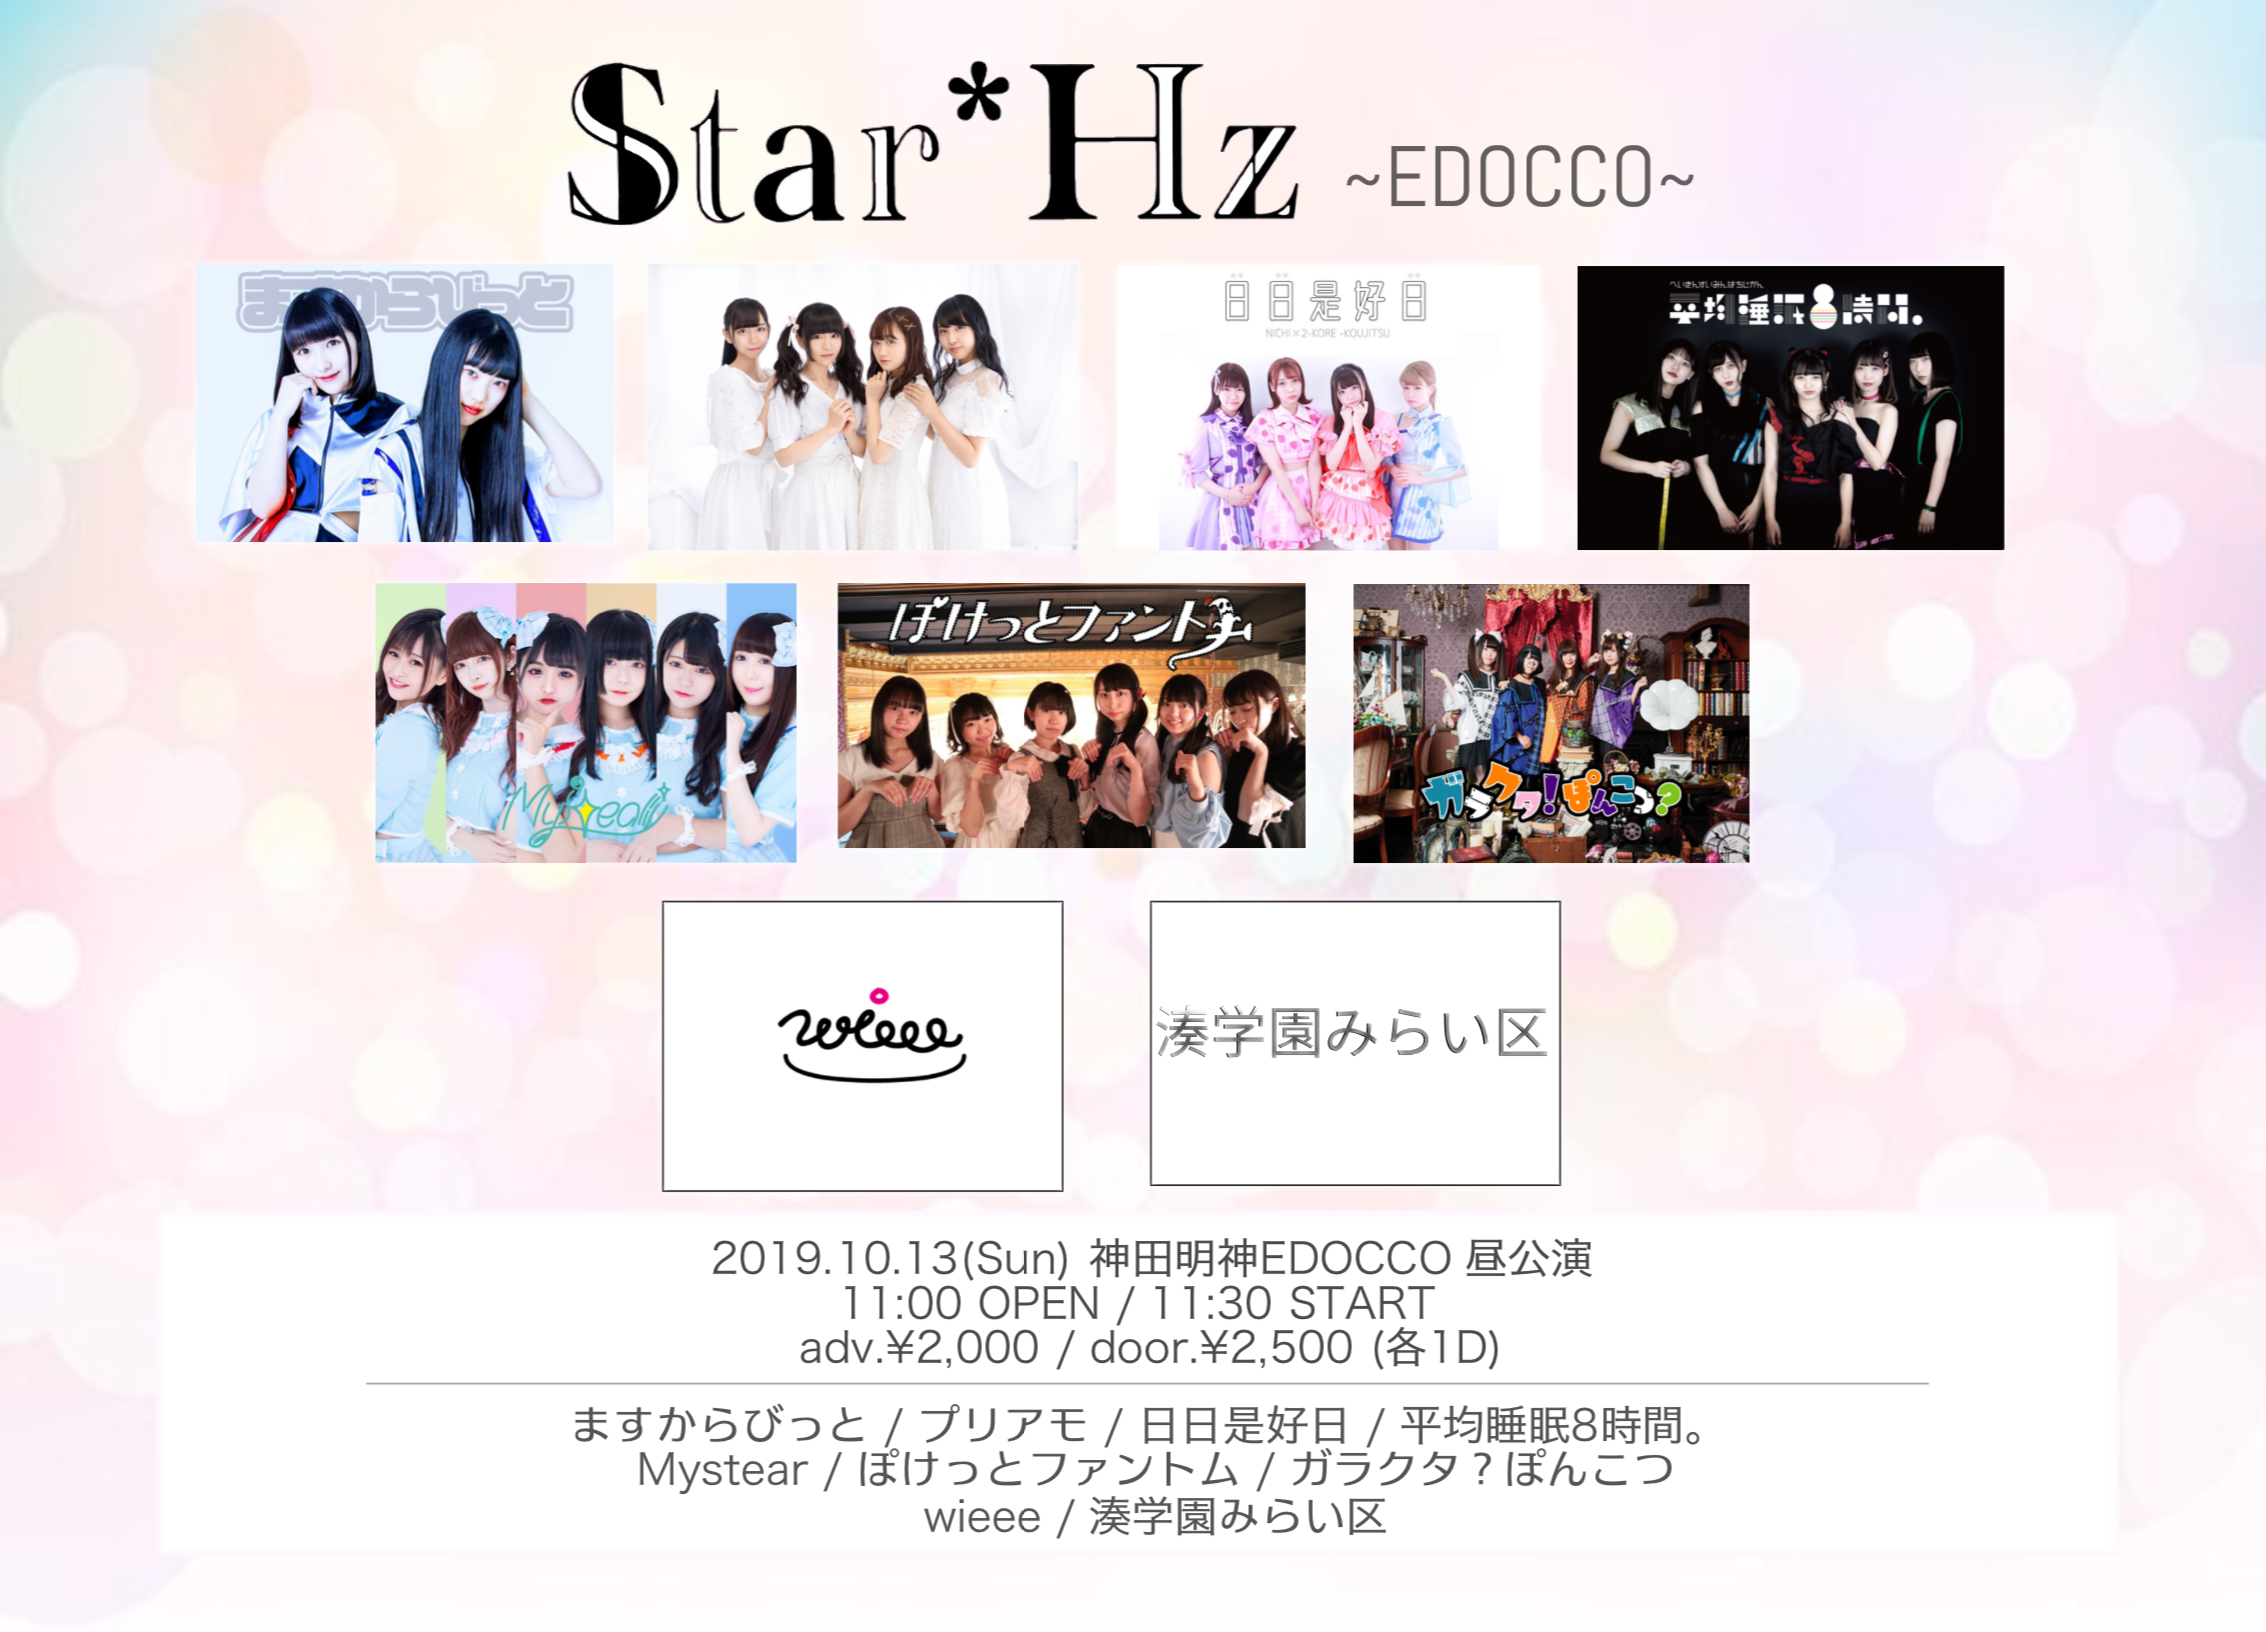 Star*Hz~EDOCCO昼~